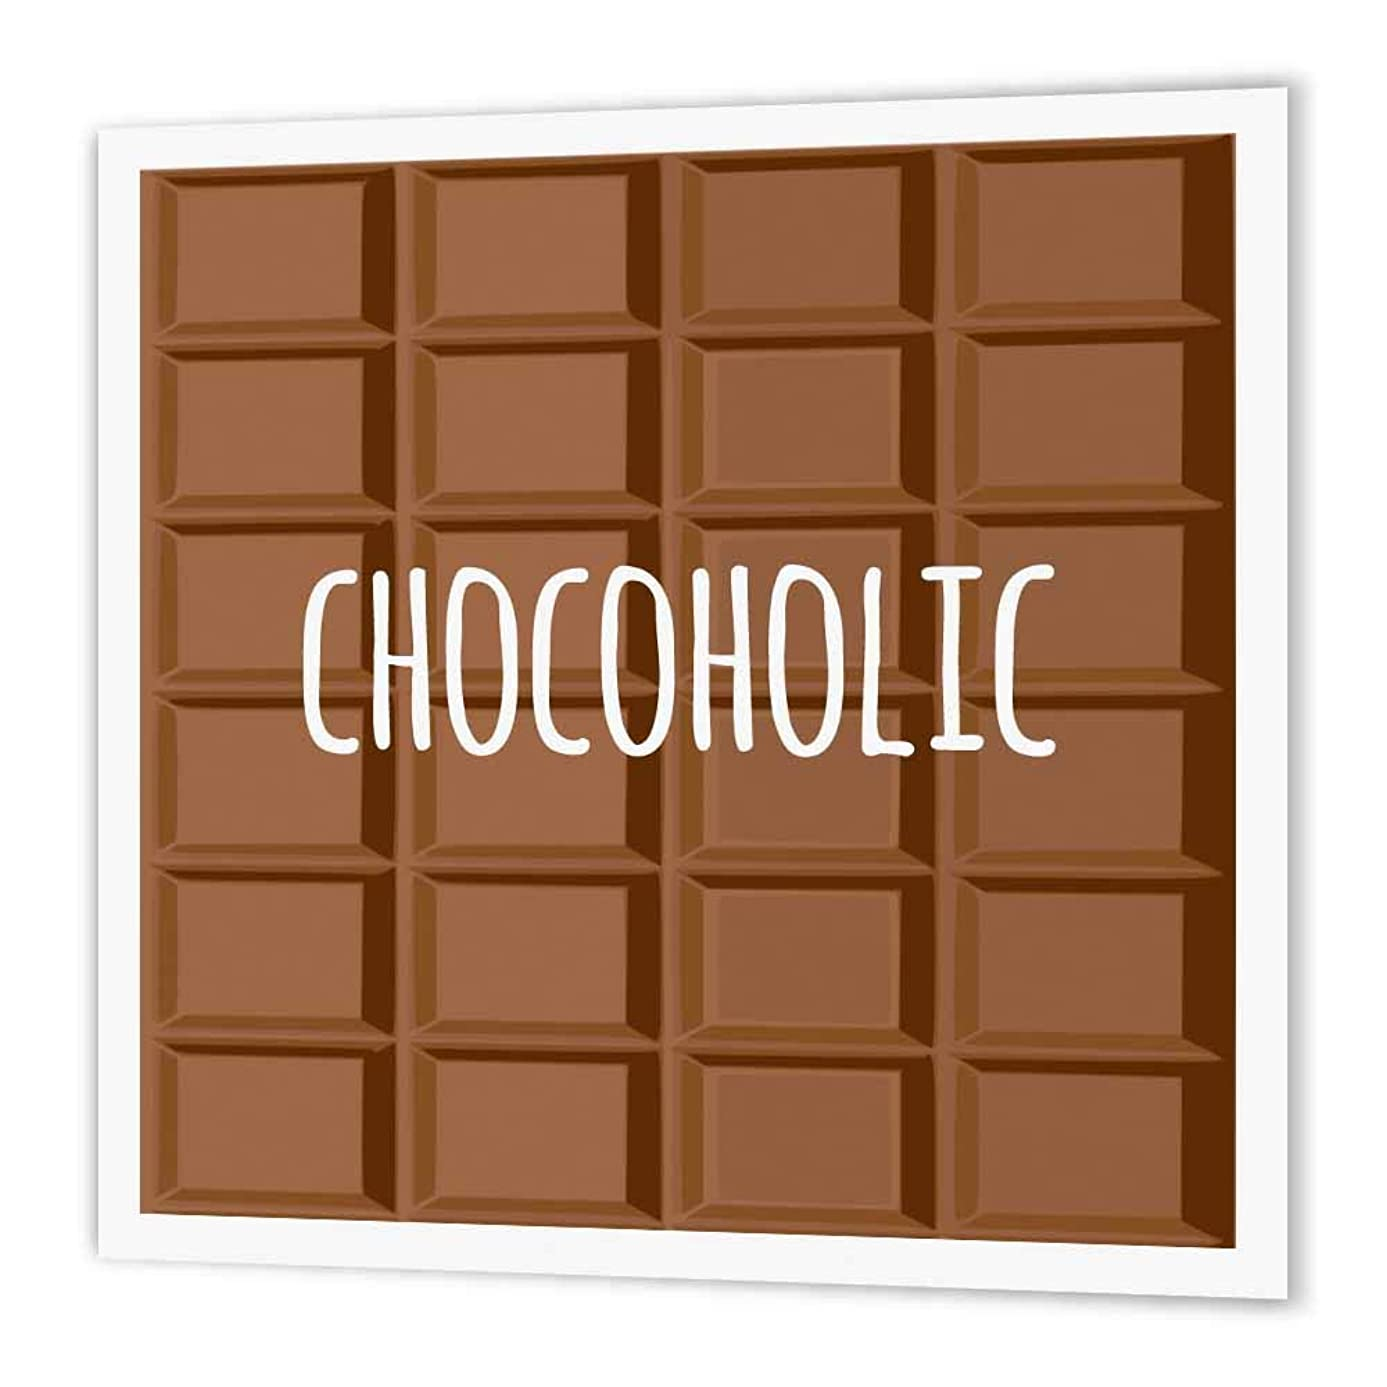 3dRose ht_151340_1 Chocoholic White Text on Chocolate Image Fun Gifts, Chocolate Lovers Iron on Heat Transfer, 8 by 8-Inch, for White Material